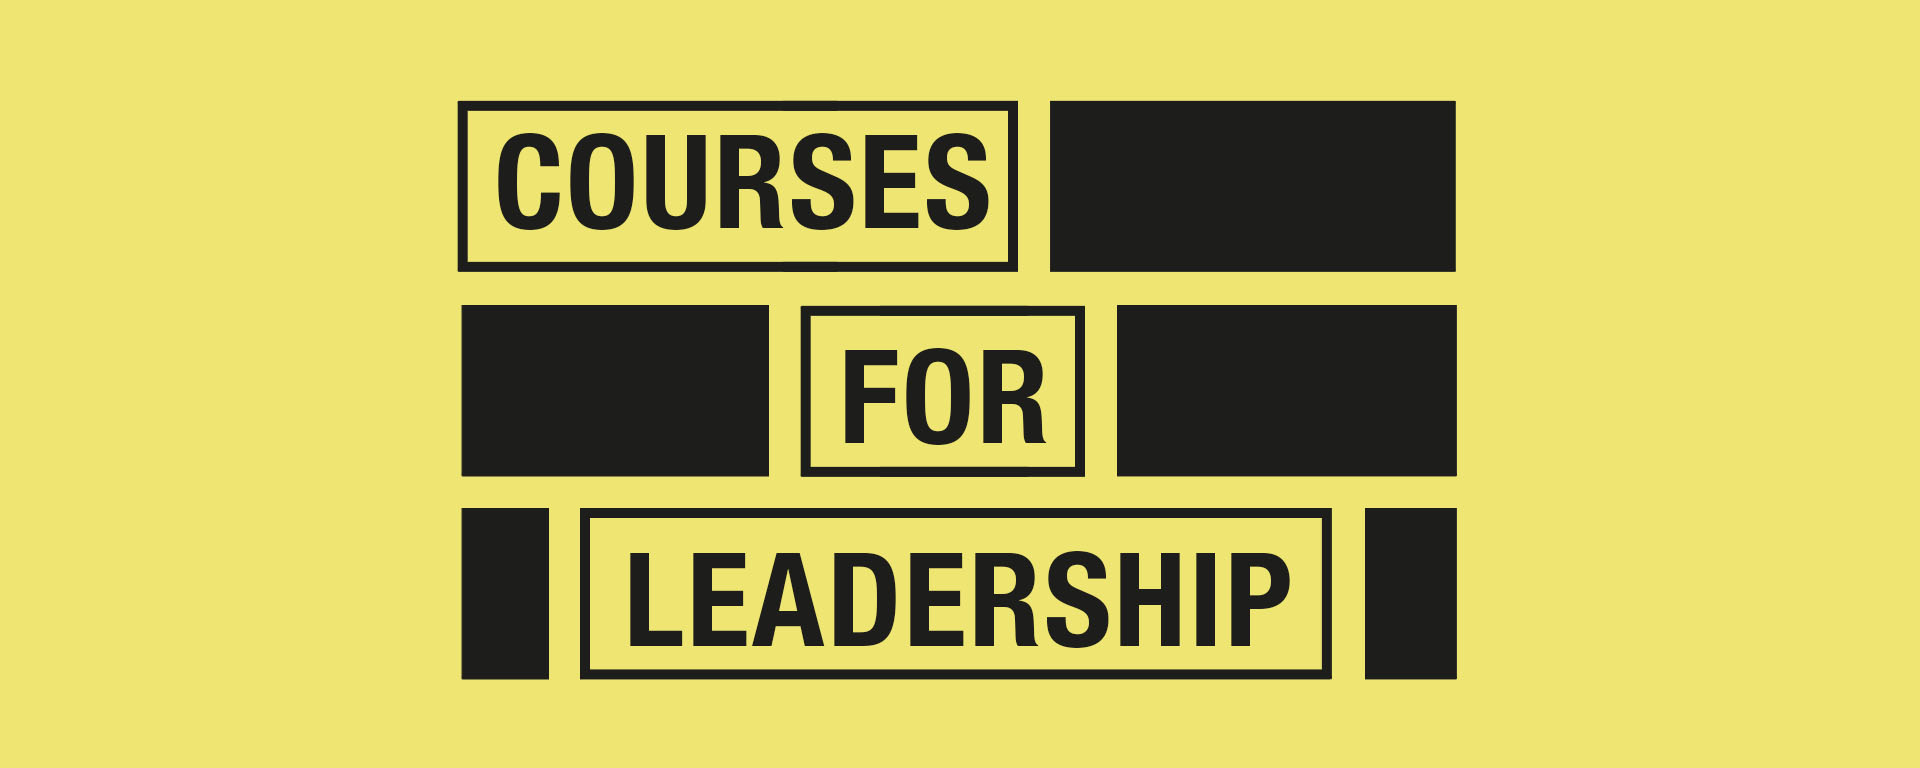 Workshop, training, coaching, personality development for leaders